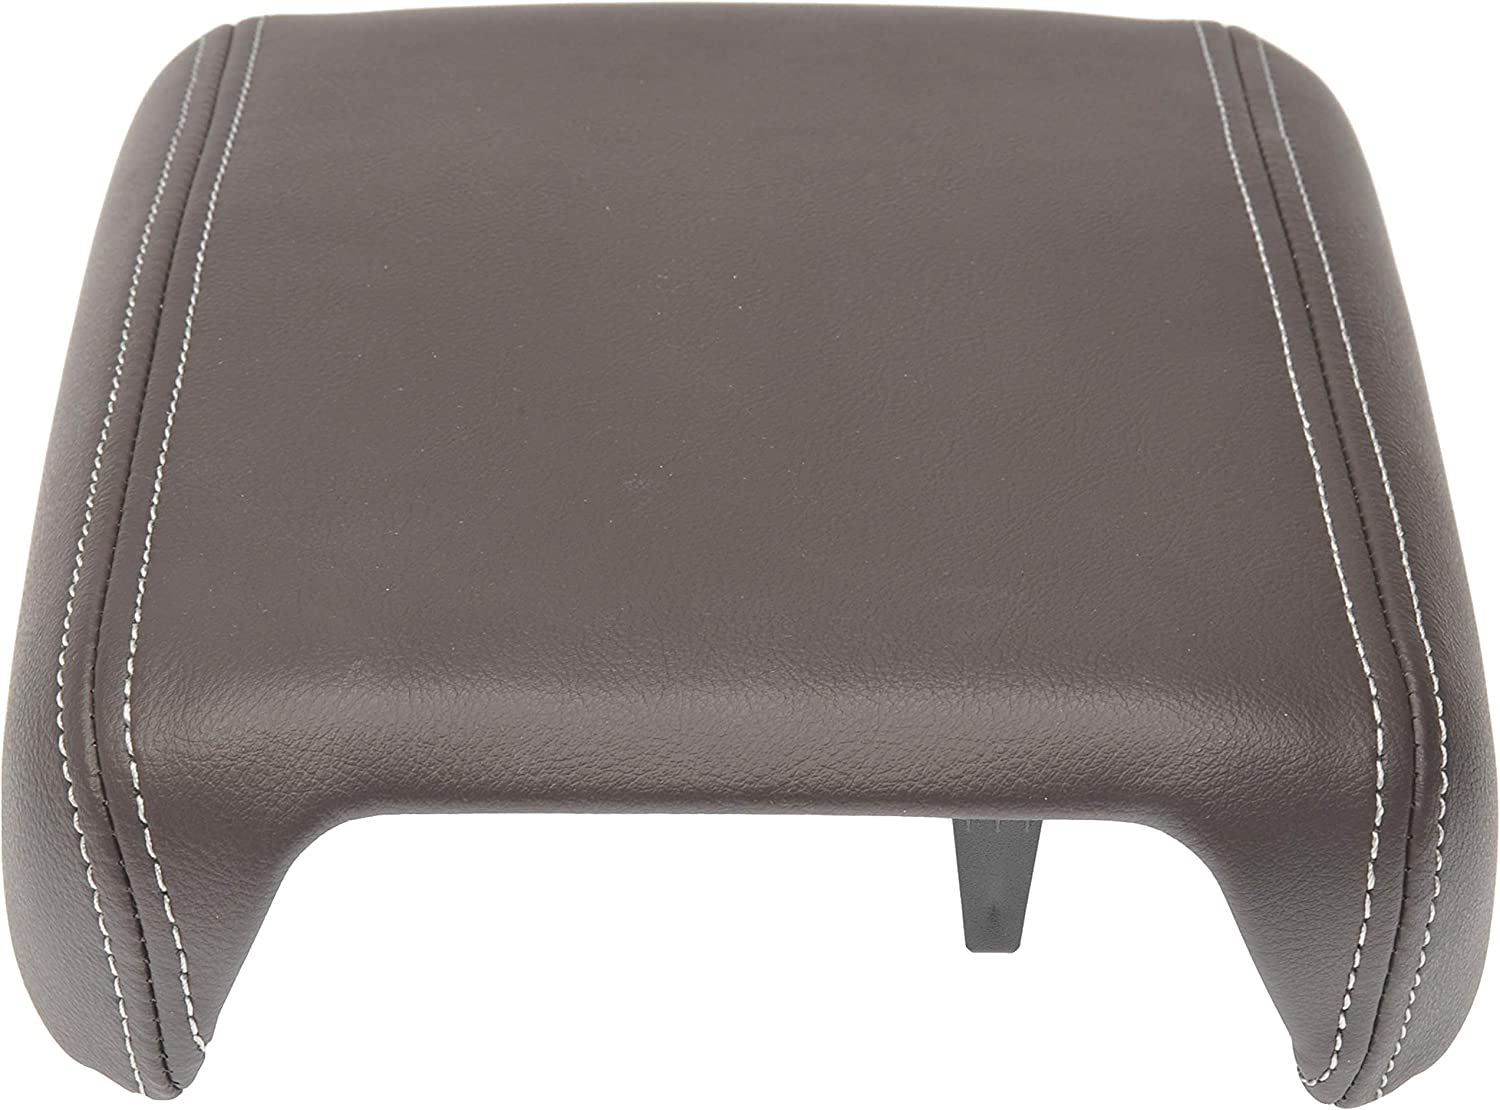 Dark Brown Dorman 925-087 Console Lid Replacement for Select Buick Models